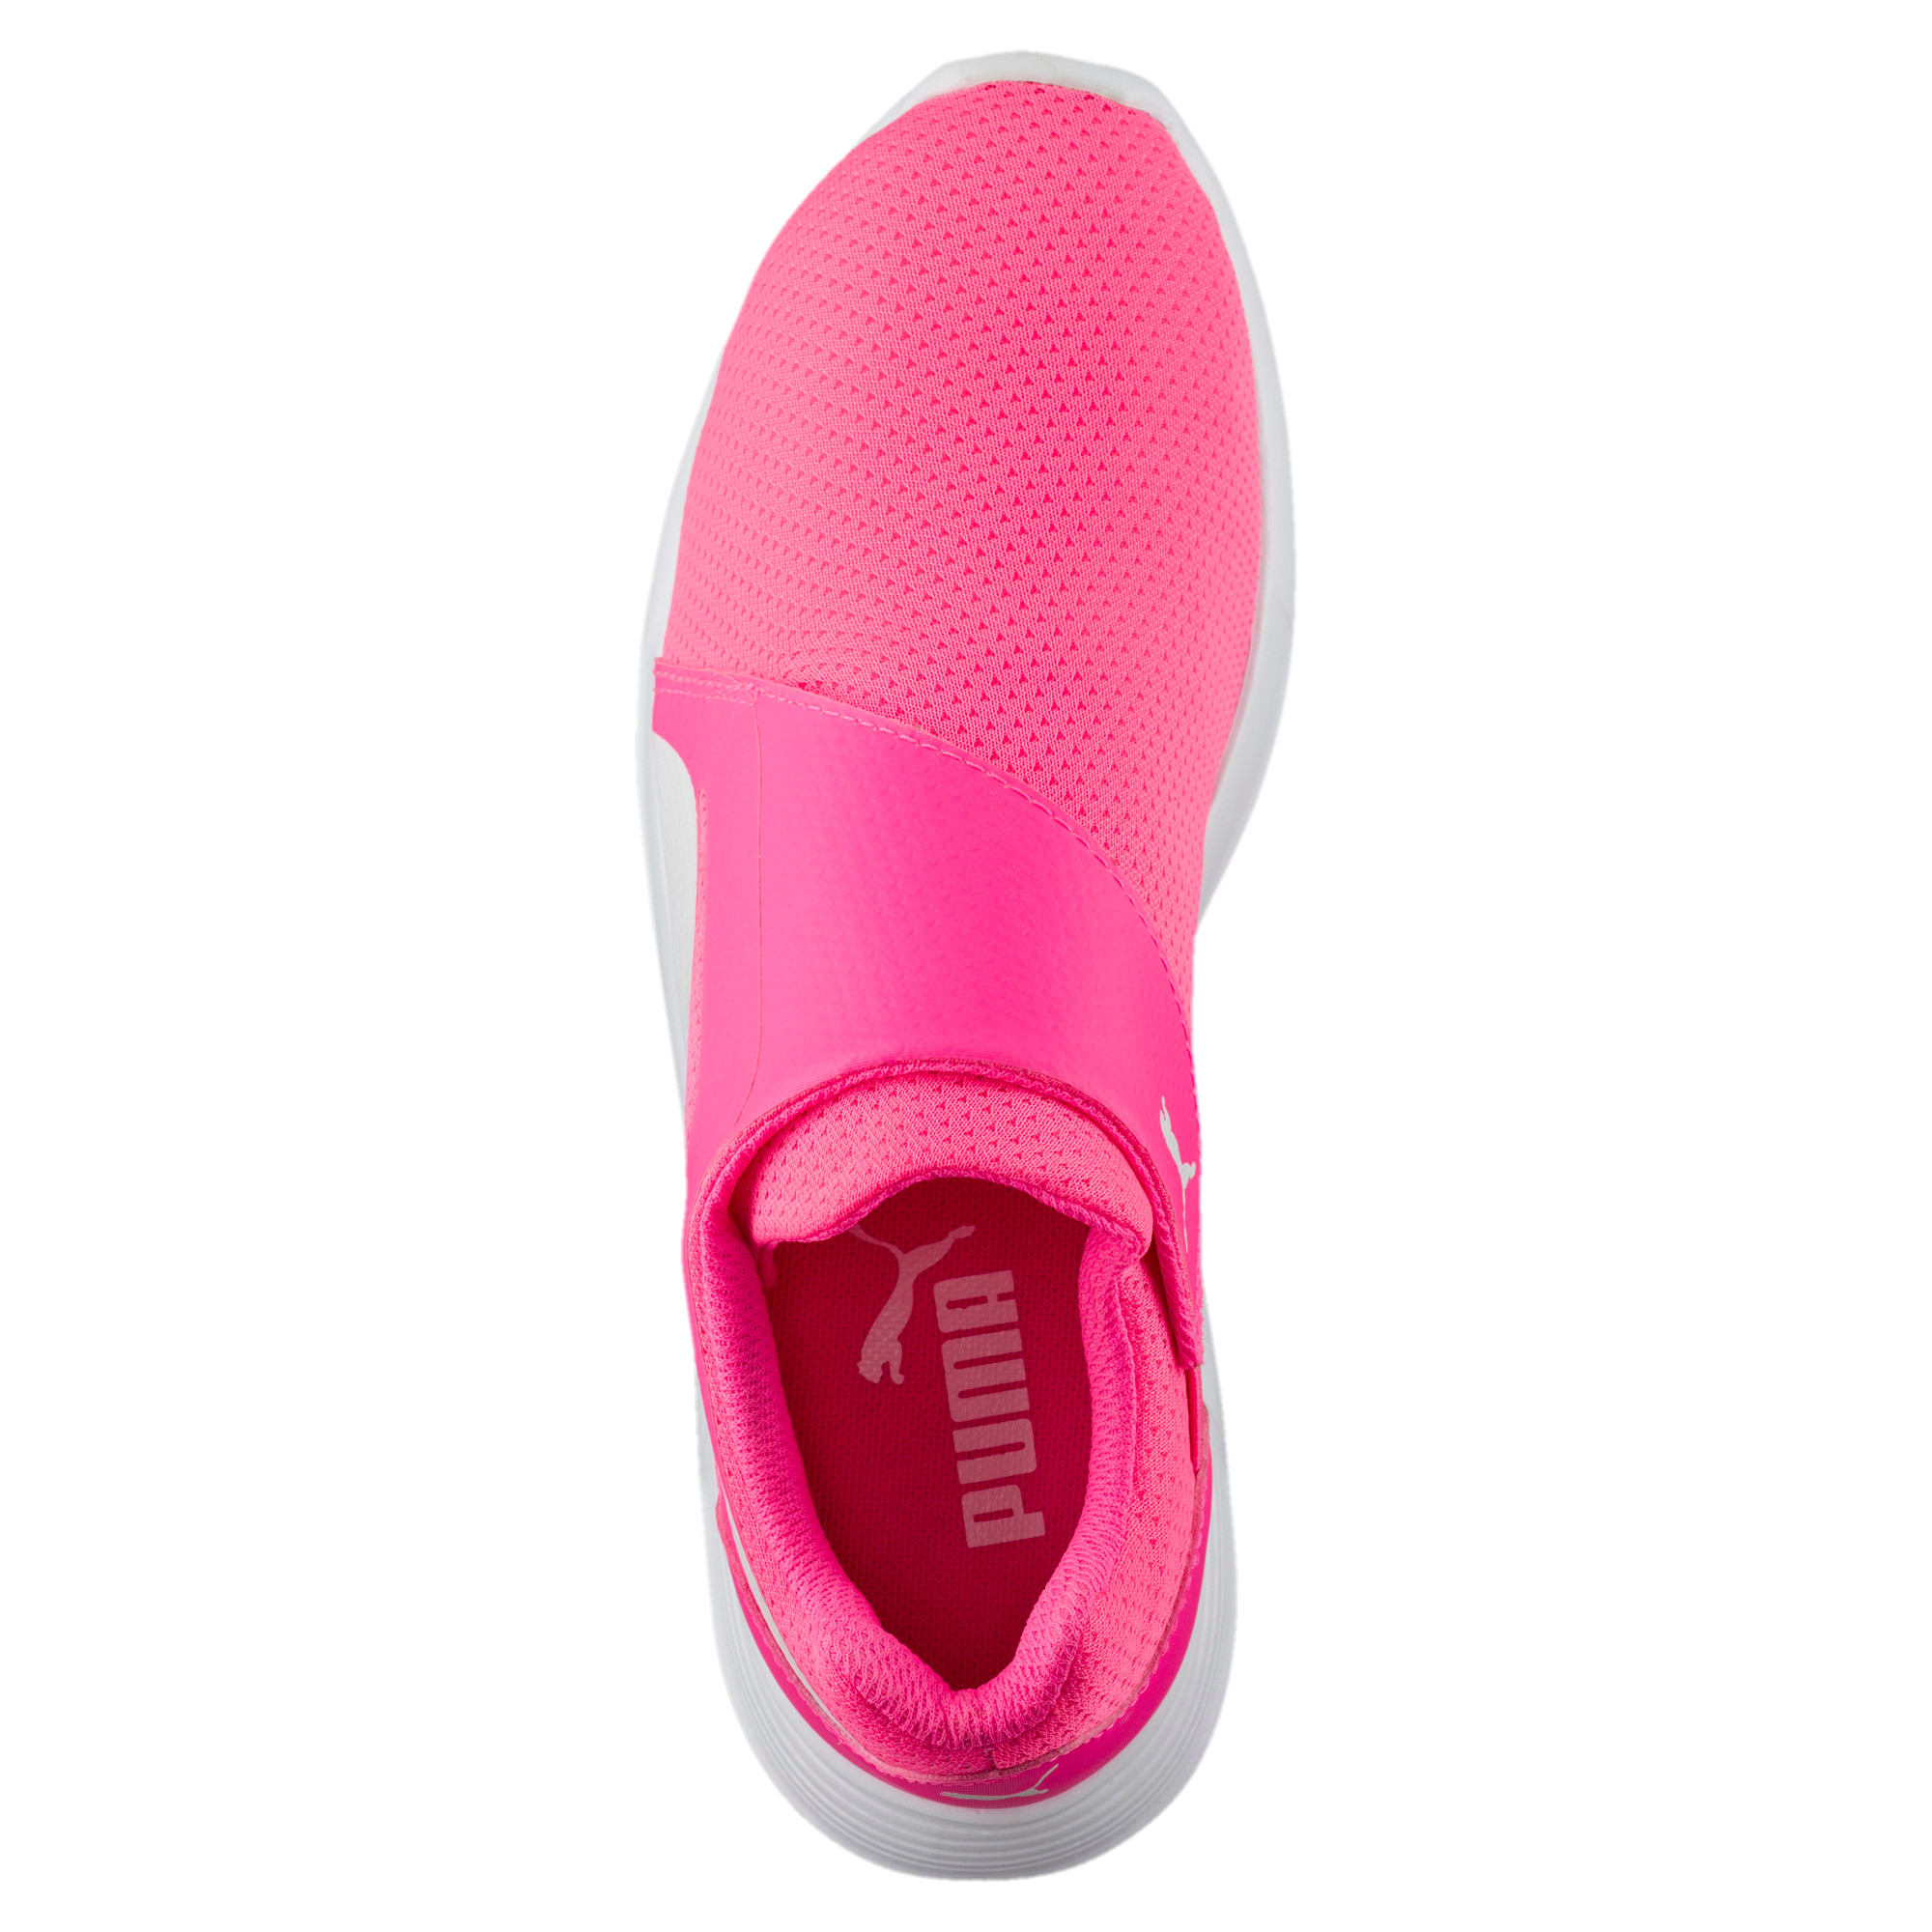 Thumbnail 5 of ST Trainer Evo AC Kids' Trainers, KNOCKOUT PINK-Puma White, medium-IND